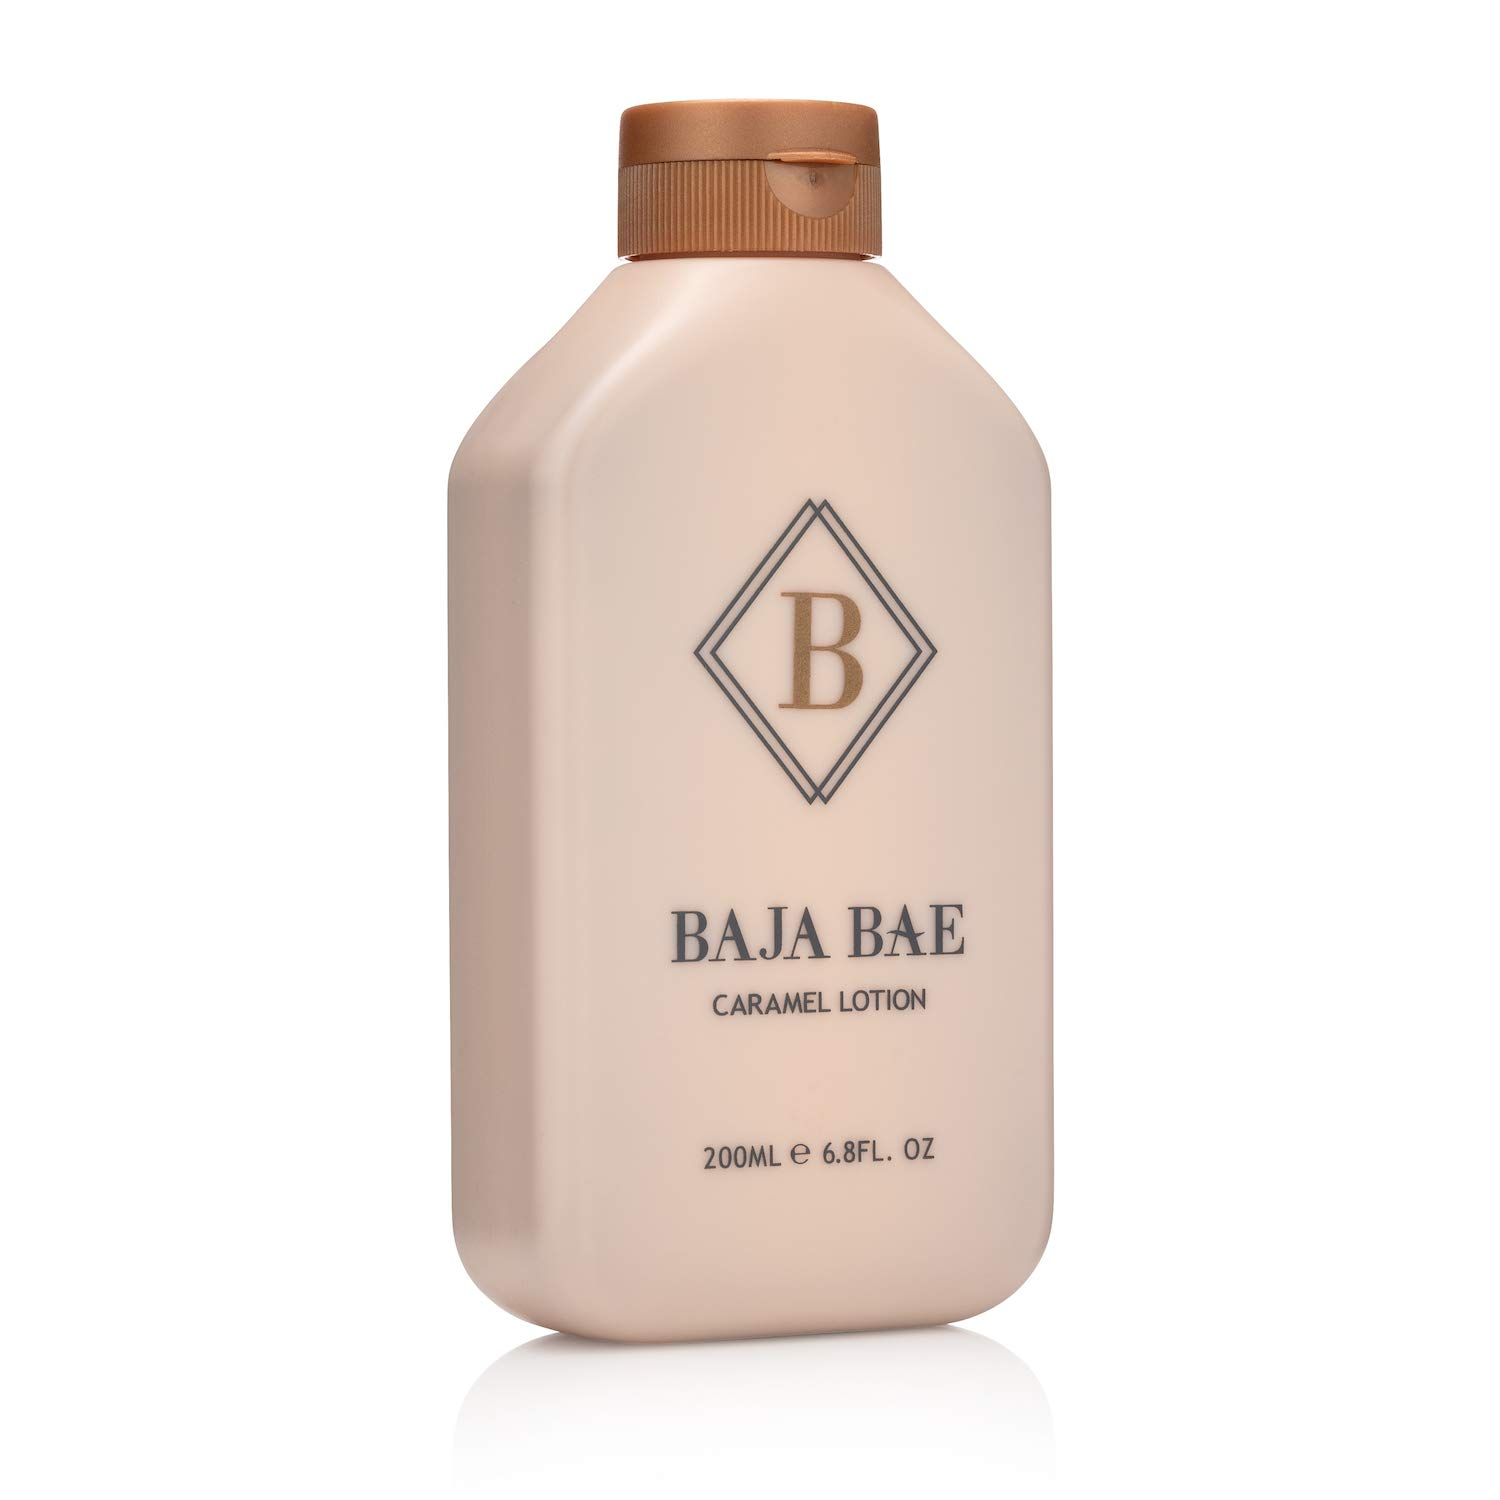 BAJA BAE Bronze Tanning Lotion for Indoor Tanning Beds - 3 in 1 Sunless Tanning Lotion, Tinted Moisturizer and Highlighting Face Tanner - Caramel Scent, 200ml